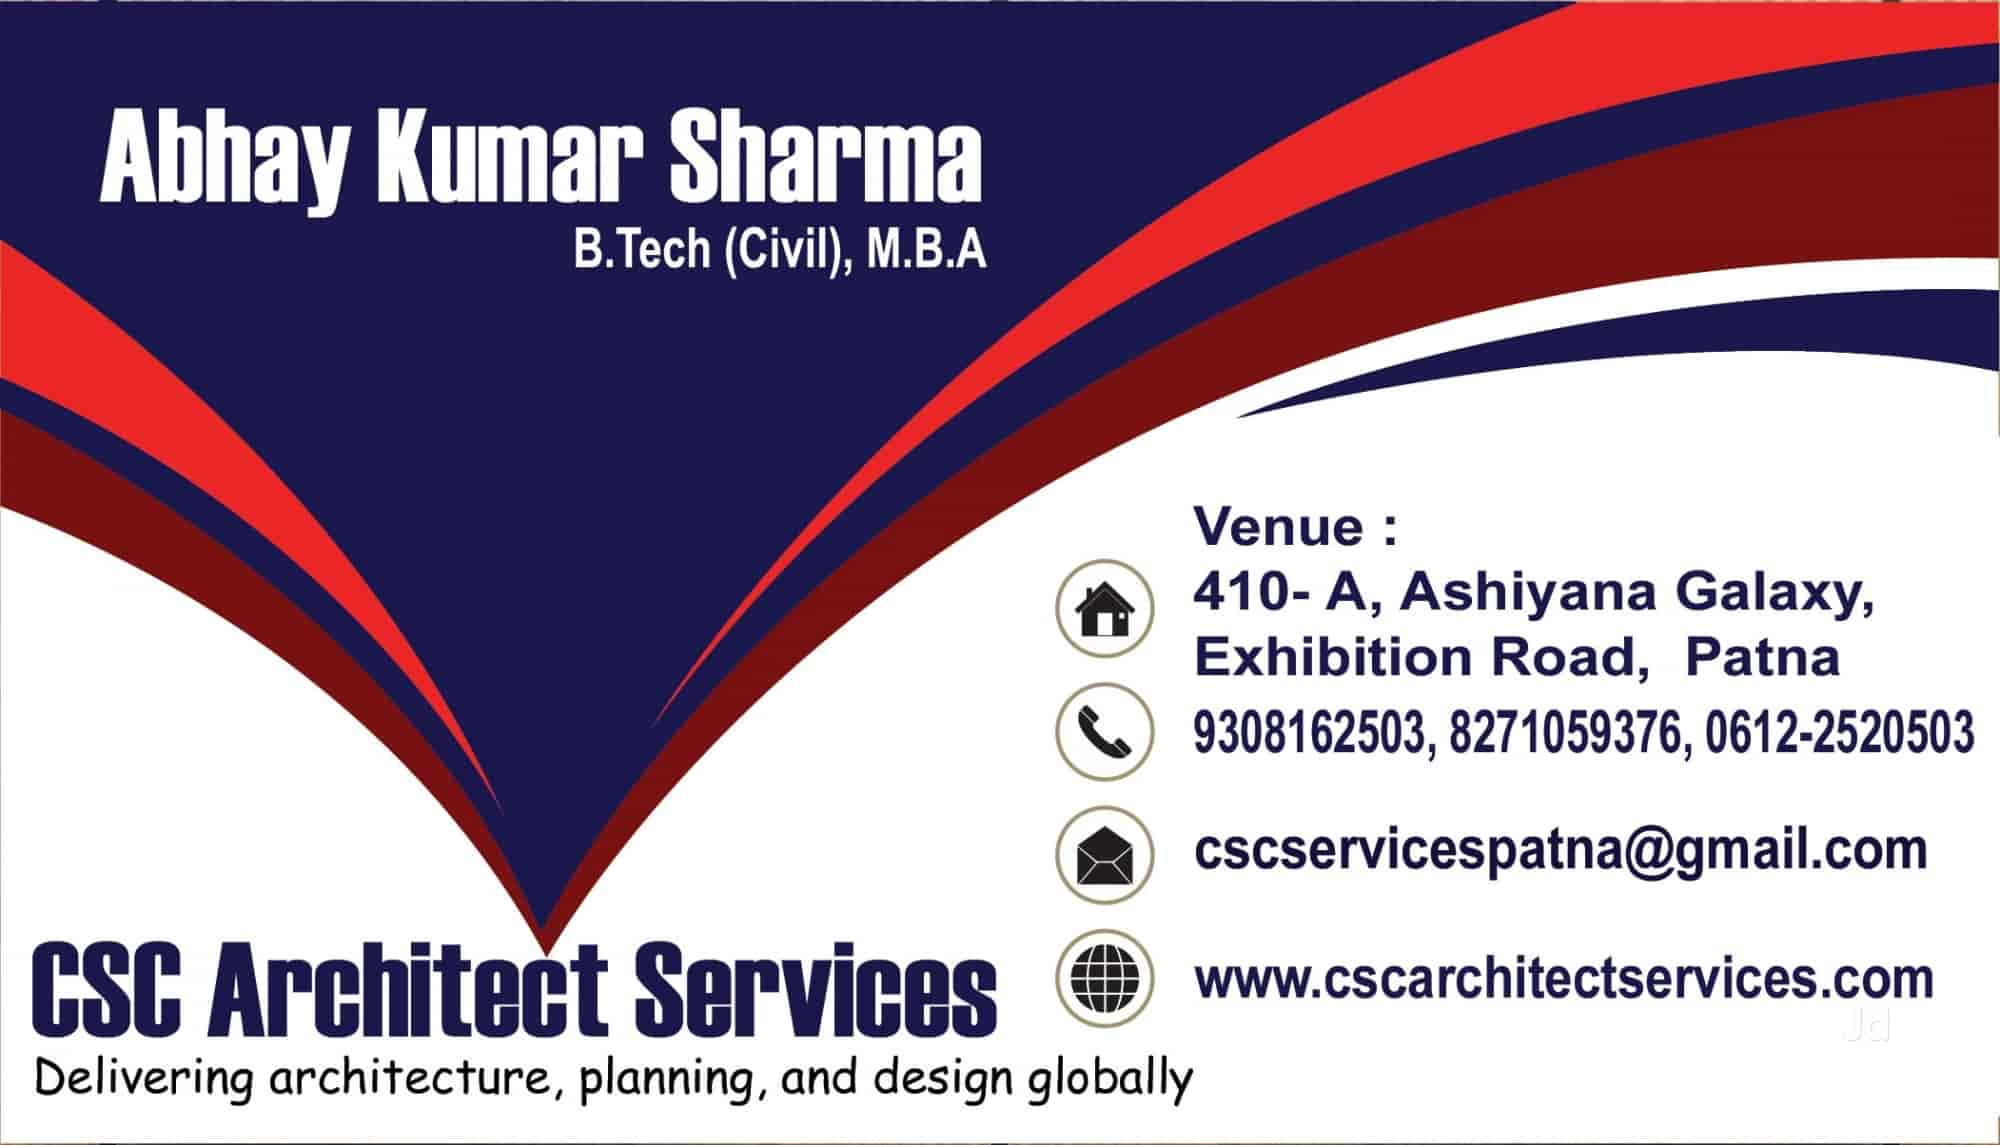 CSC Architect Services, Exhibition Road - Commercial Architects in